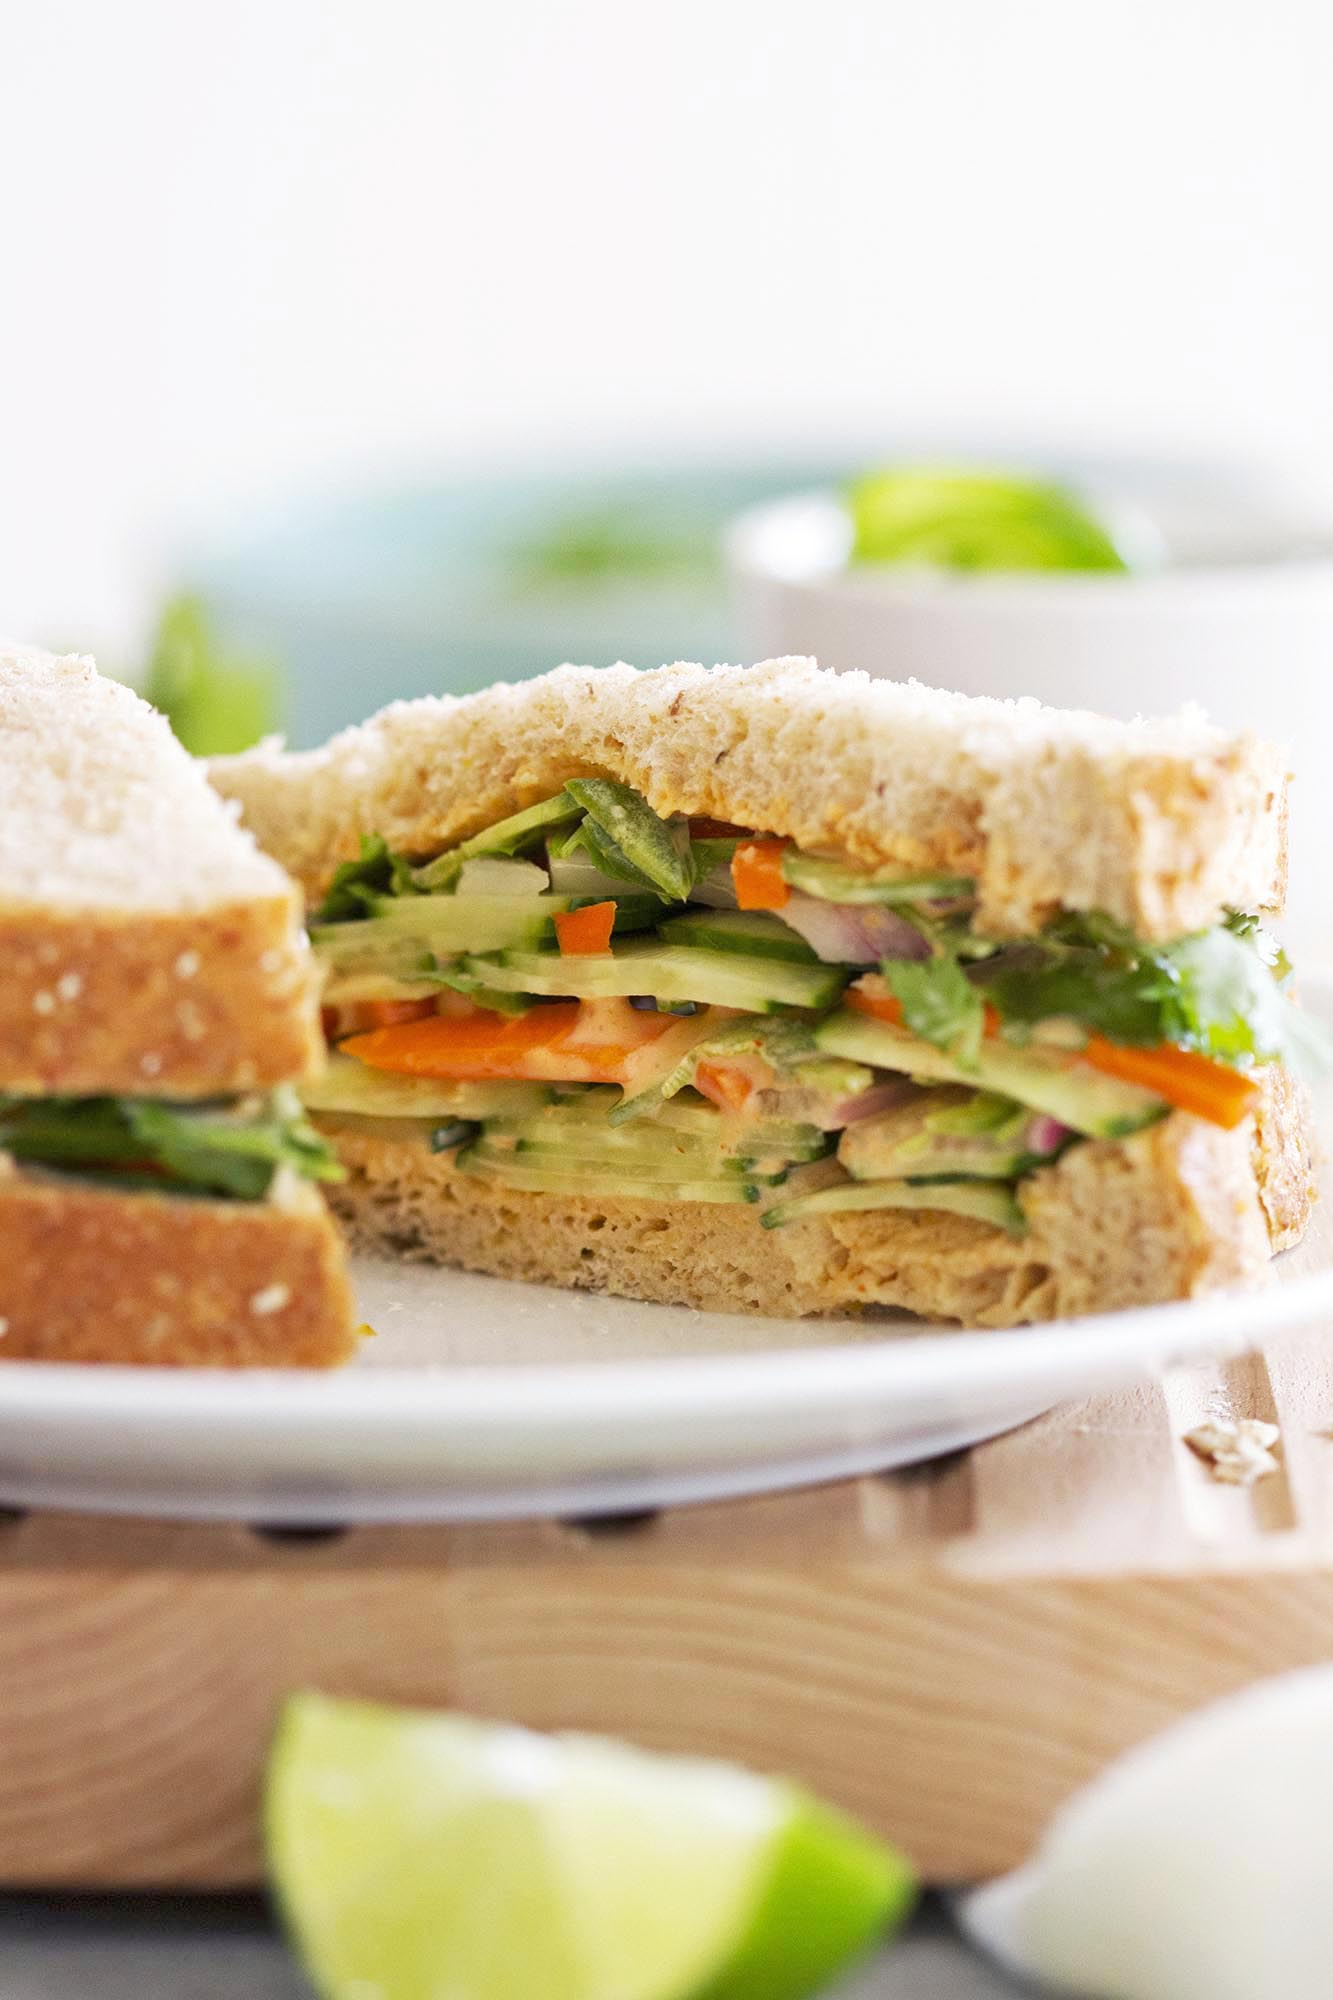 The Best Hot Vegetarian Sandwiches Recipes on Yummly | Leftover (vegan) Turkey Sandwiches, Grilled Cheese Sandwich With Garlic Parmesan Crust, Brown Butter Fried Nutella Banana Croissant Sandwiches.